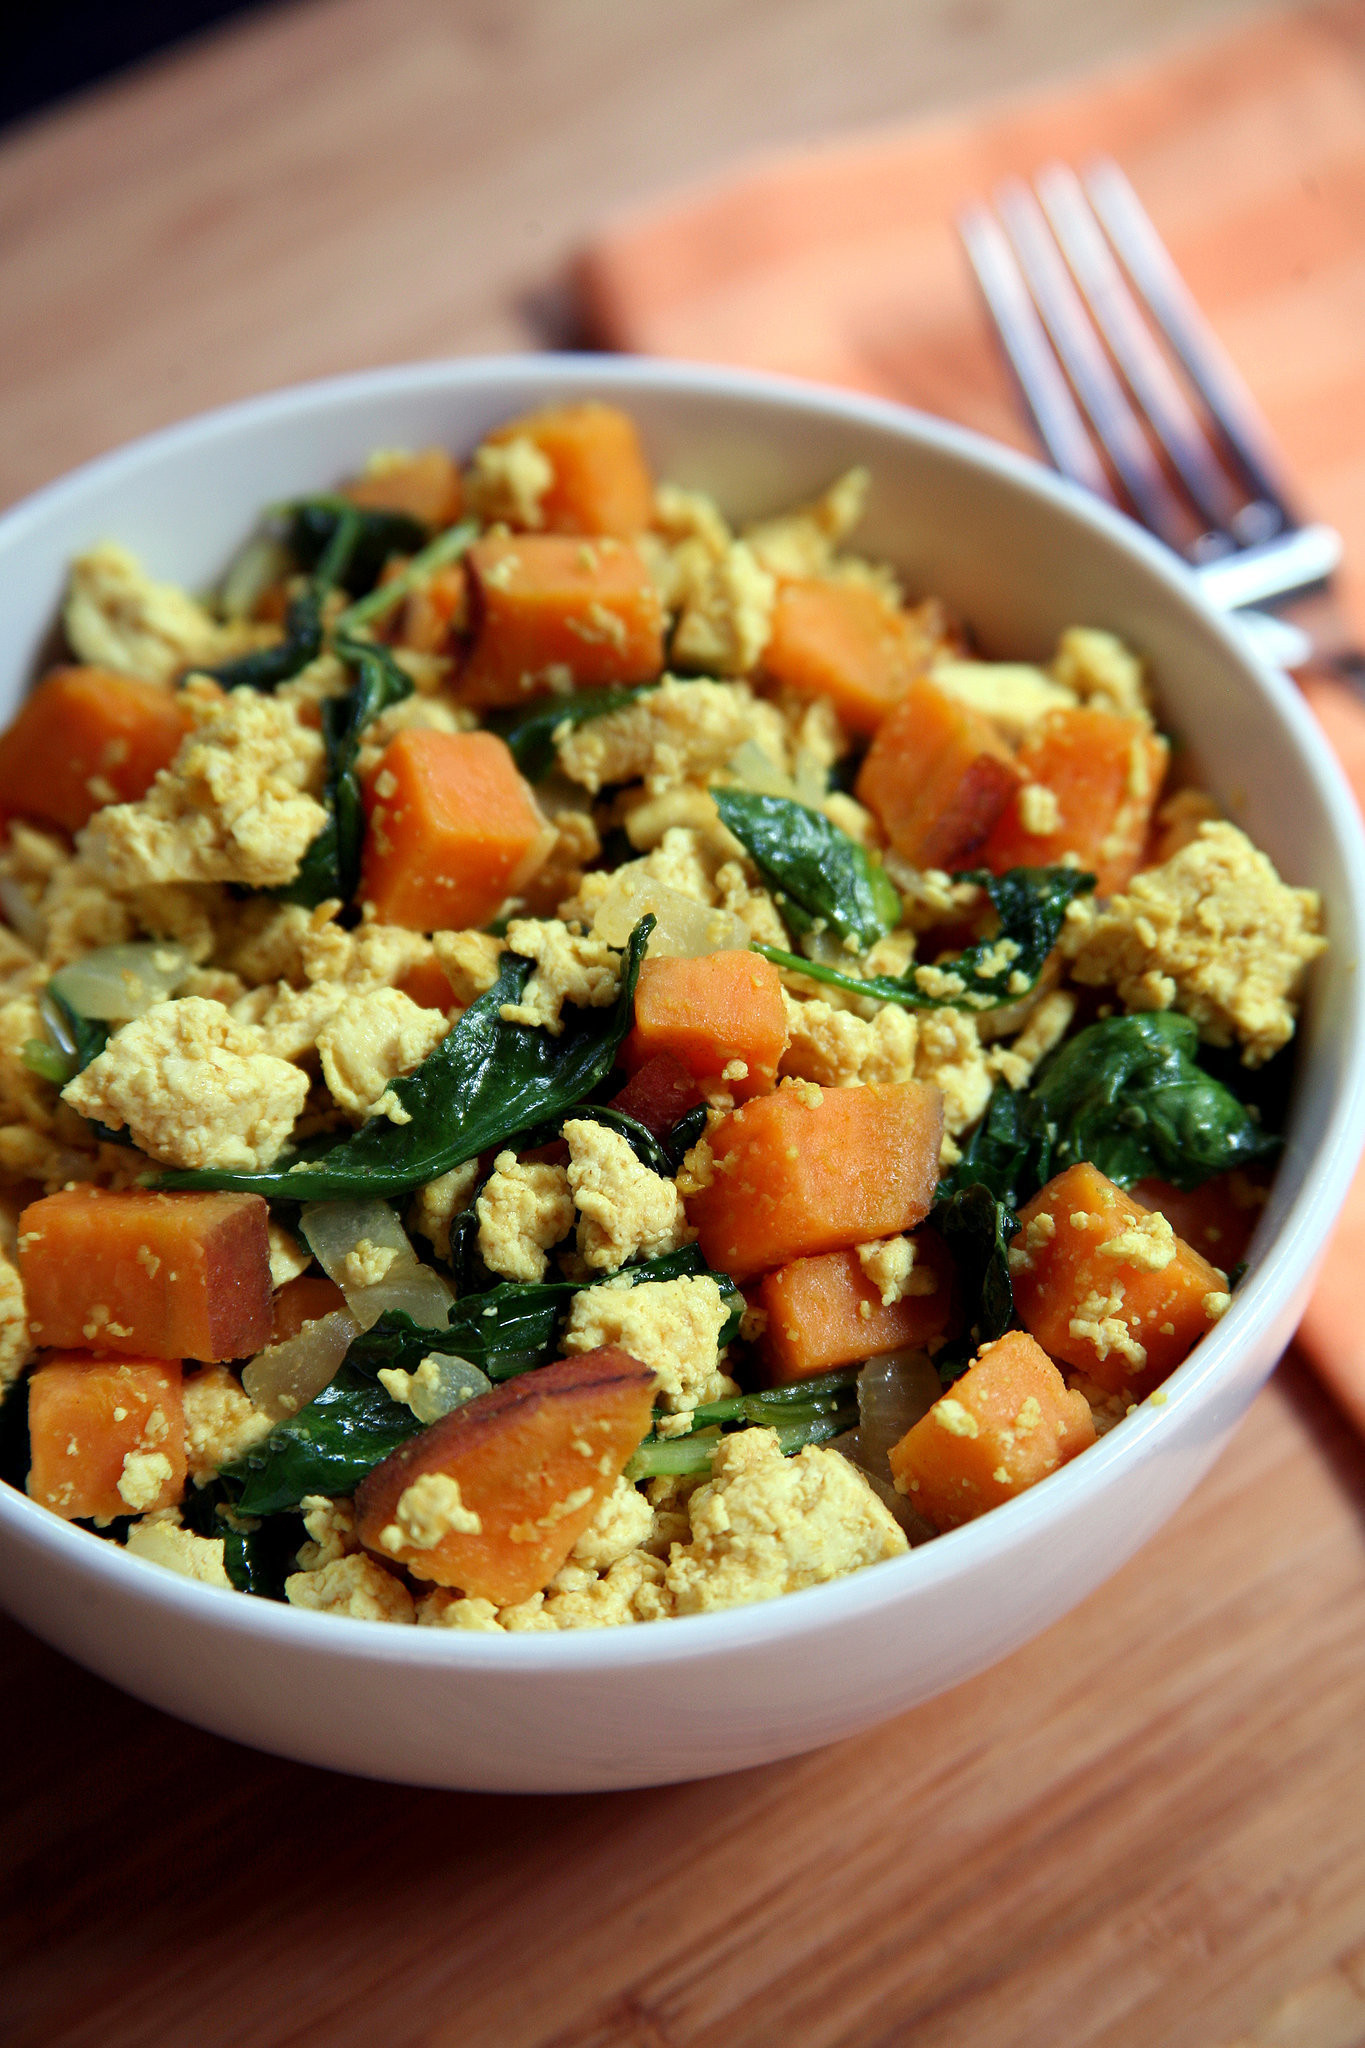 Sweet Potato Recipes Vegan  Vegan Breakfast Recipes Tofu Kale Sweet Potato Scramble